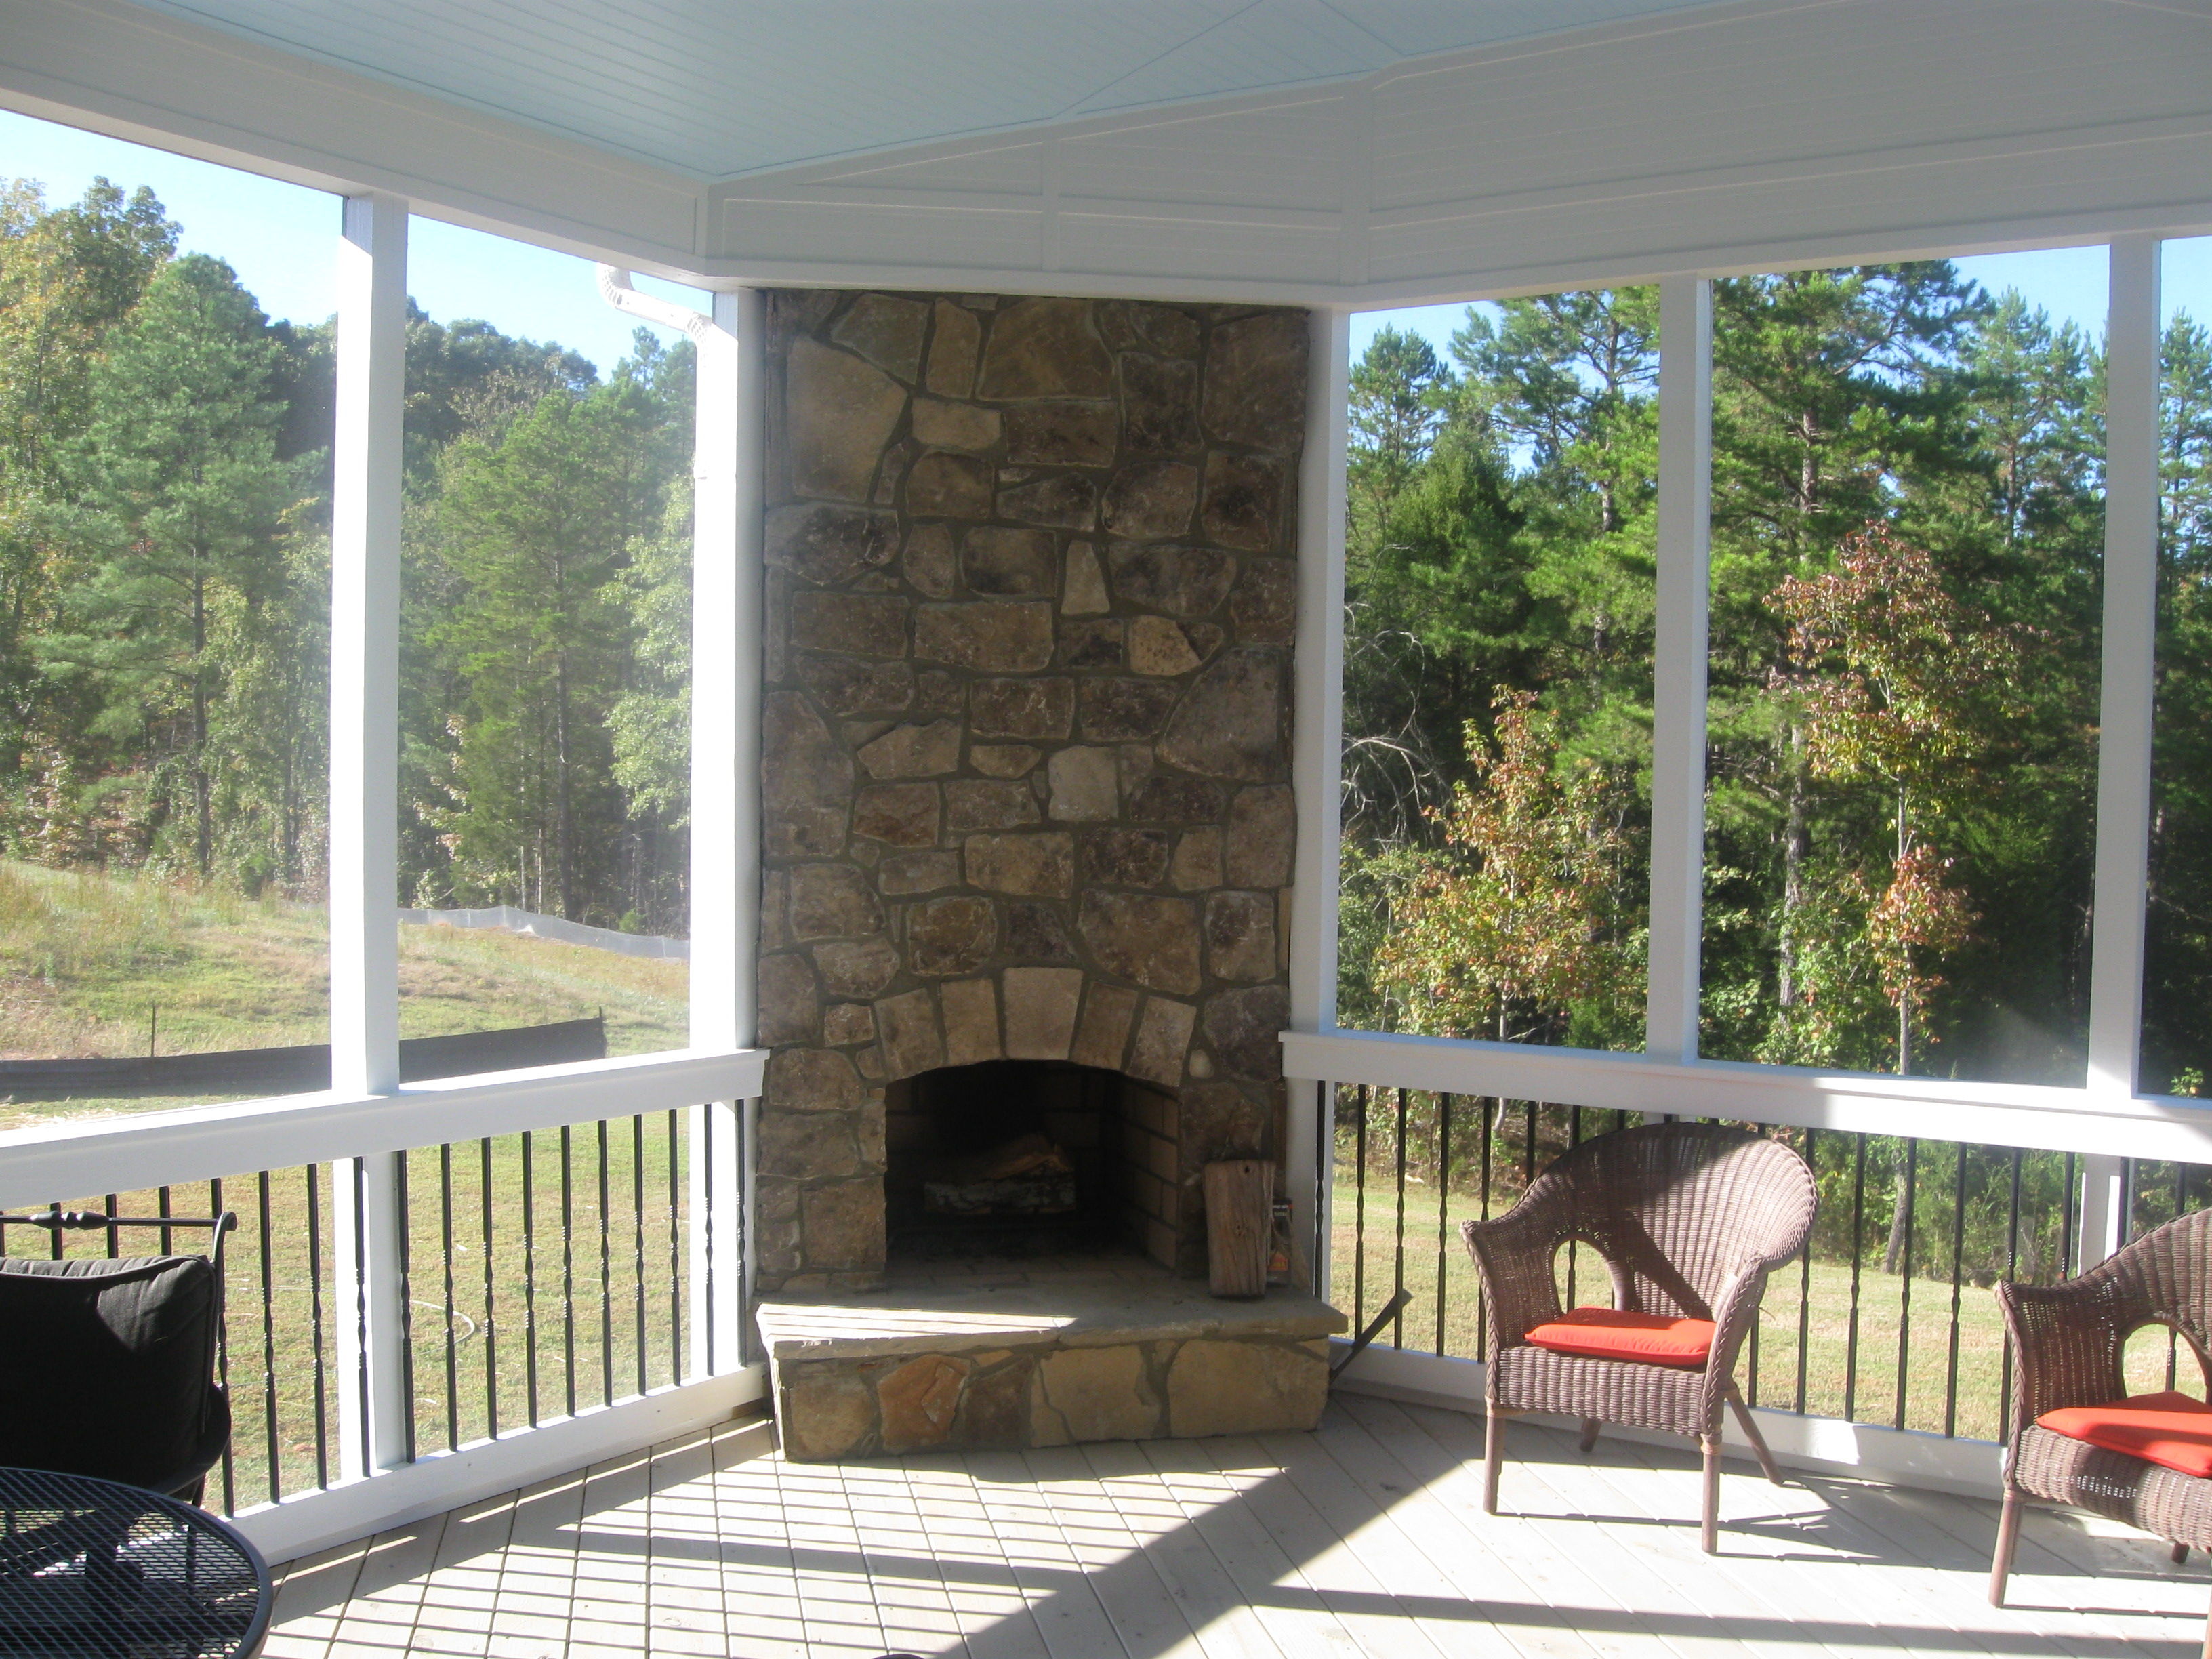 Winterizing your outdoor living space winterizing your for Patio fireplace plans